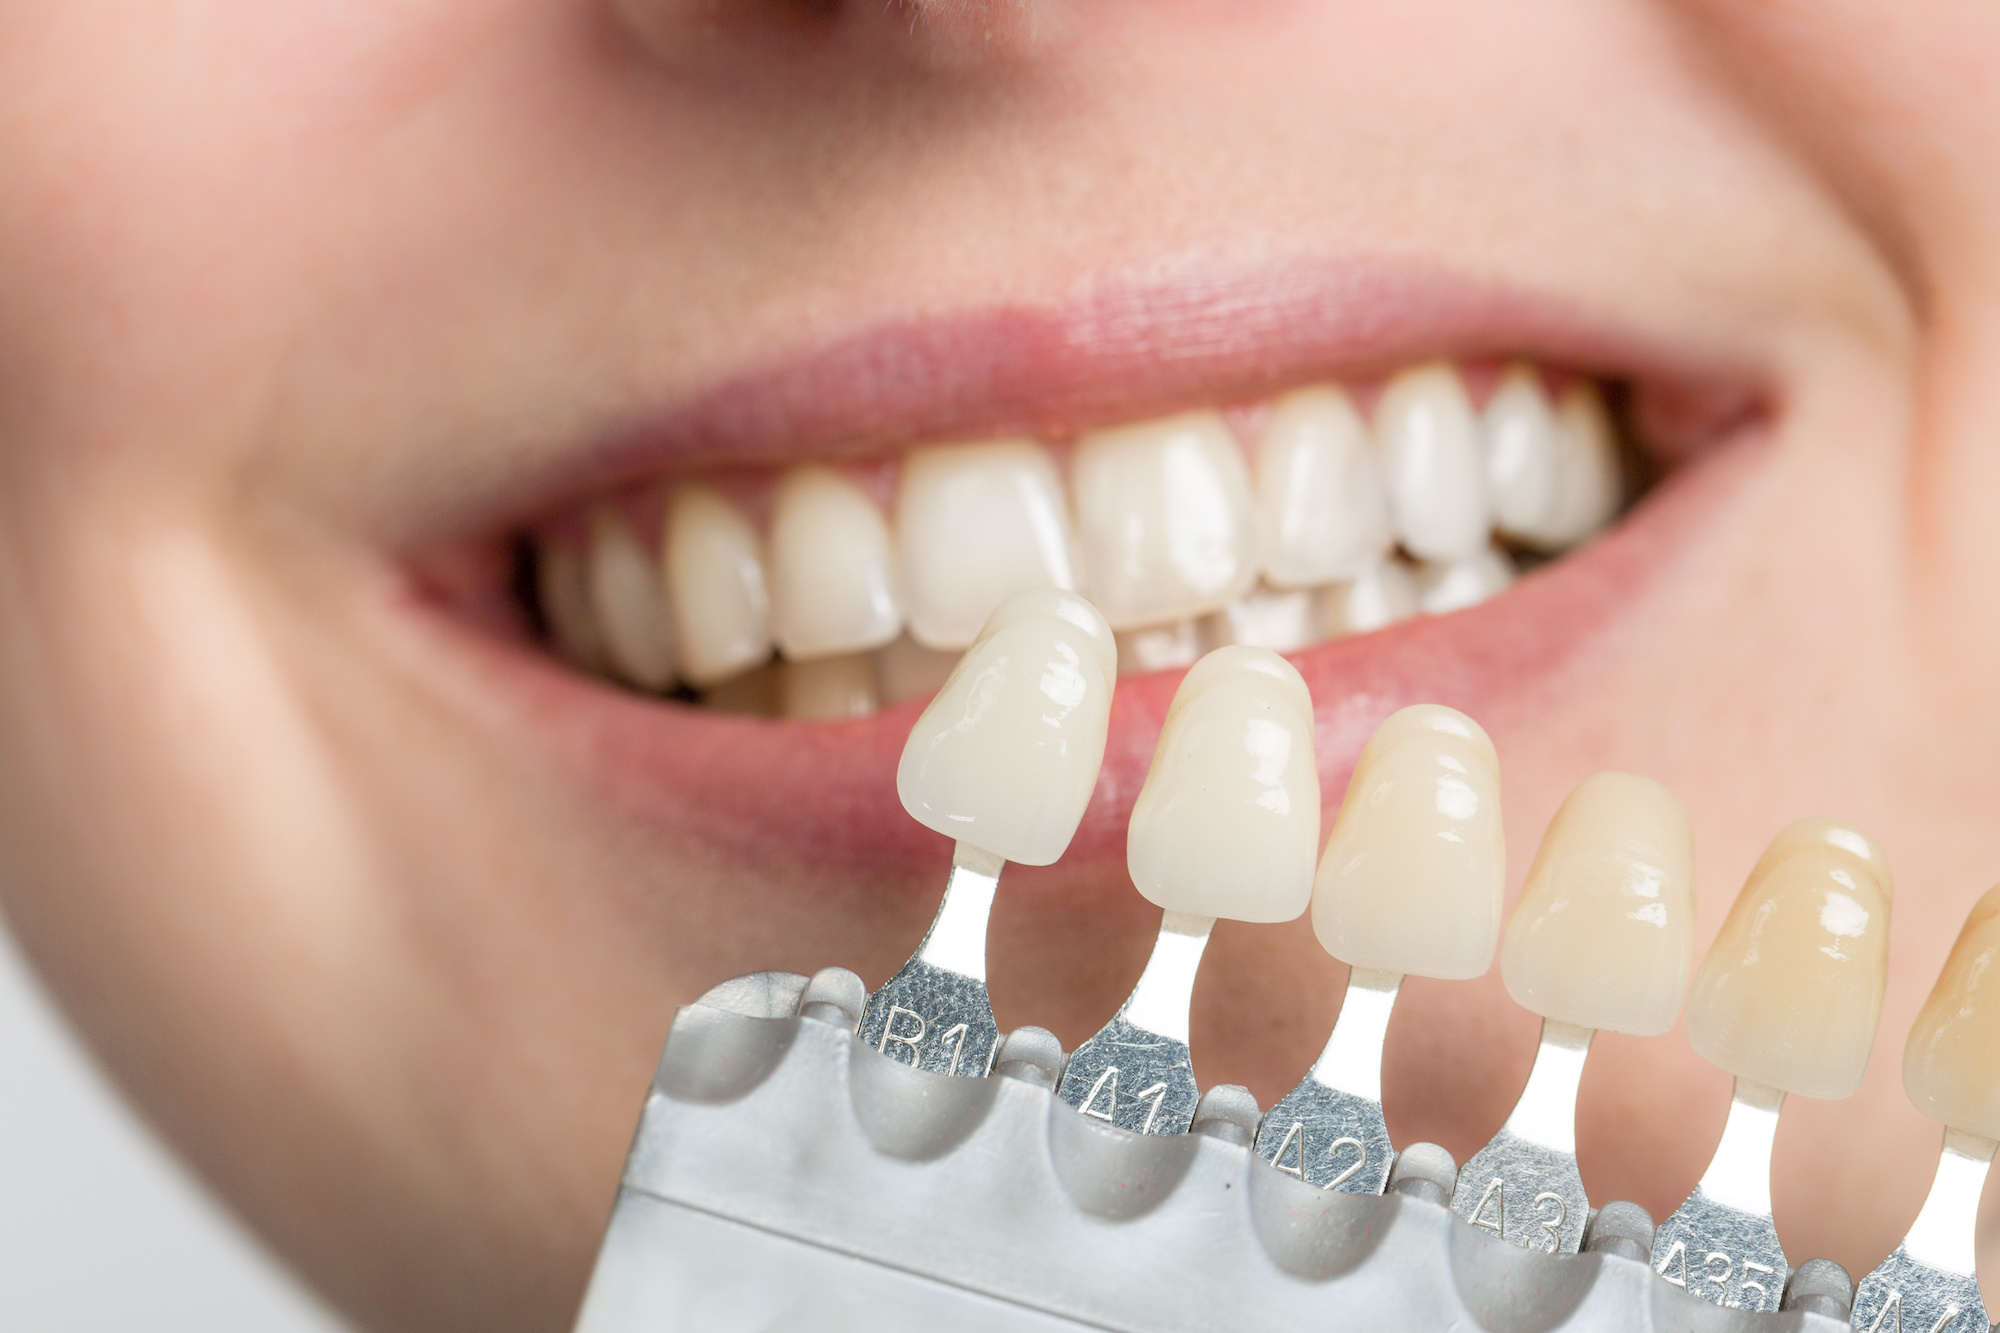 How Do Veneers & Lumineers Damage My Teeth? Are They Bad For My Oral Health?